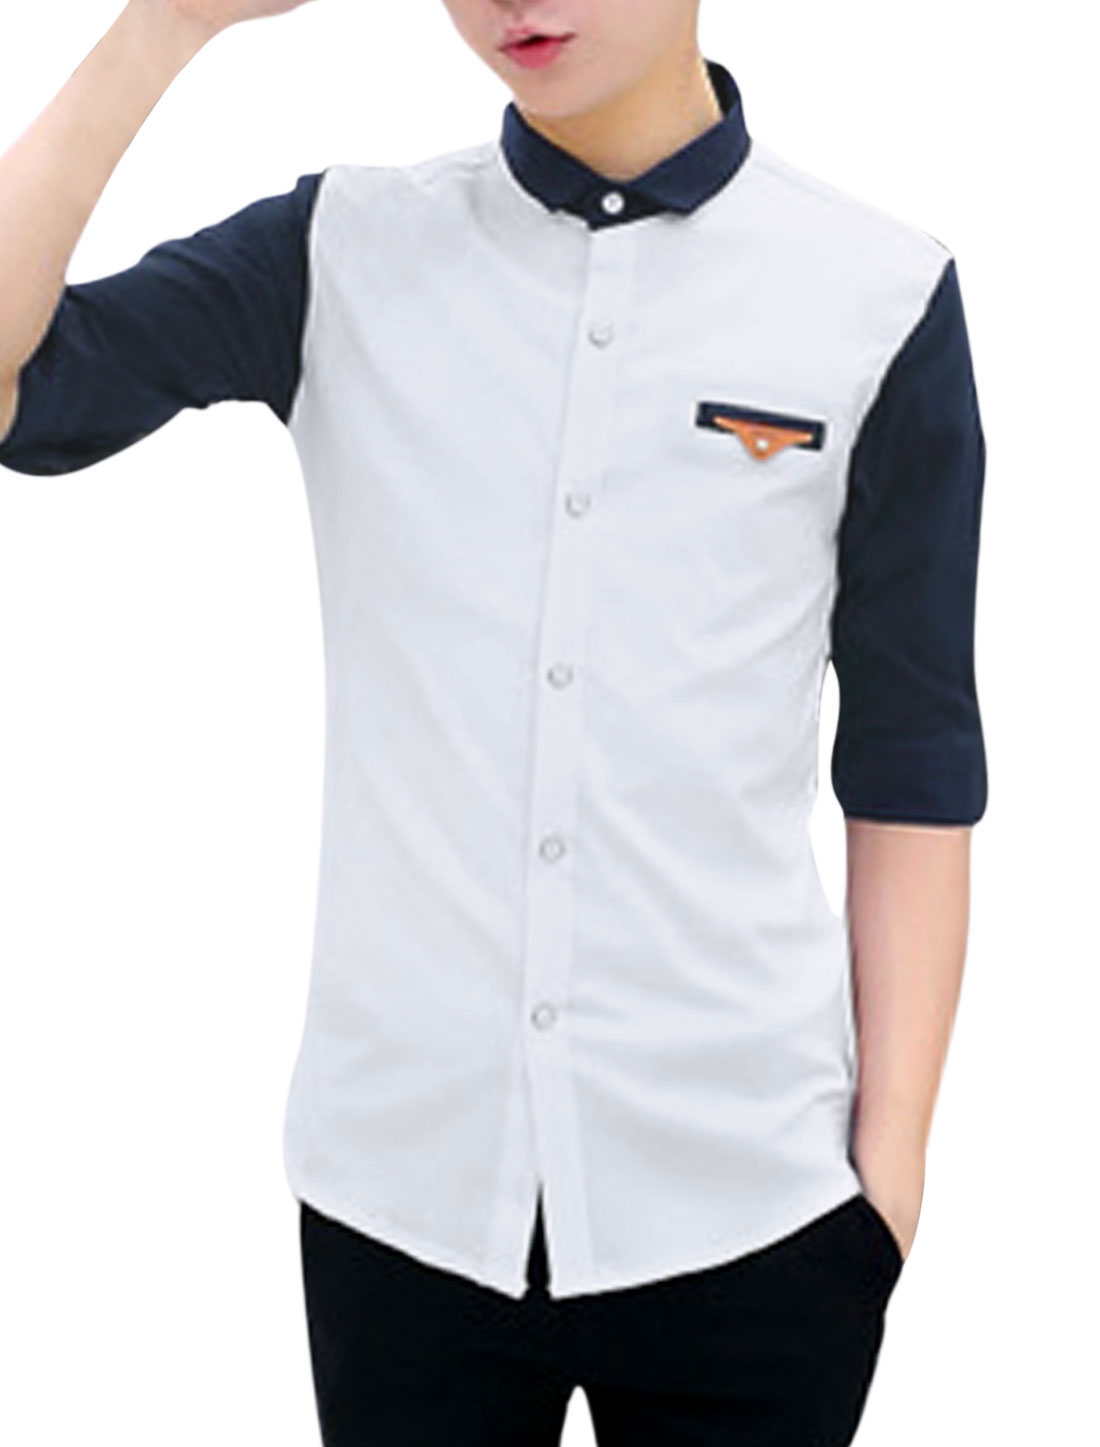 Men Contrast Color Turn Down Collar Elbow Sleeves Casual Shirt White M